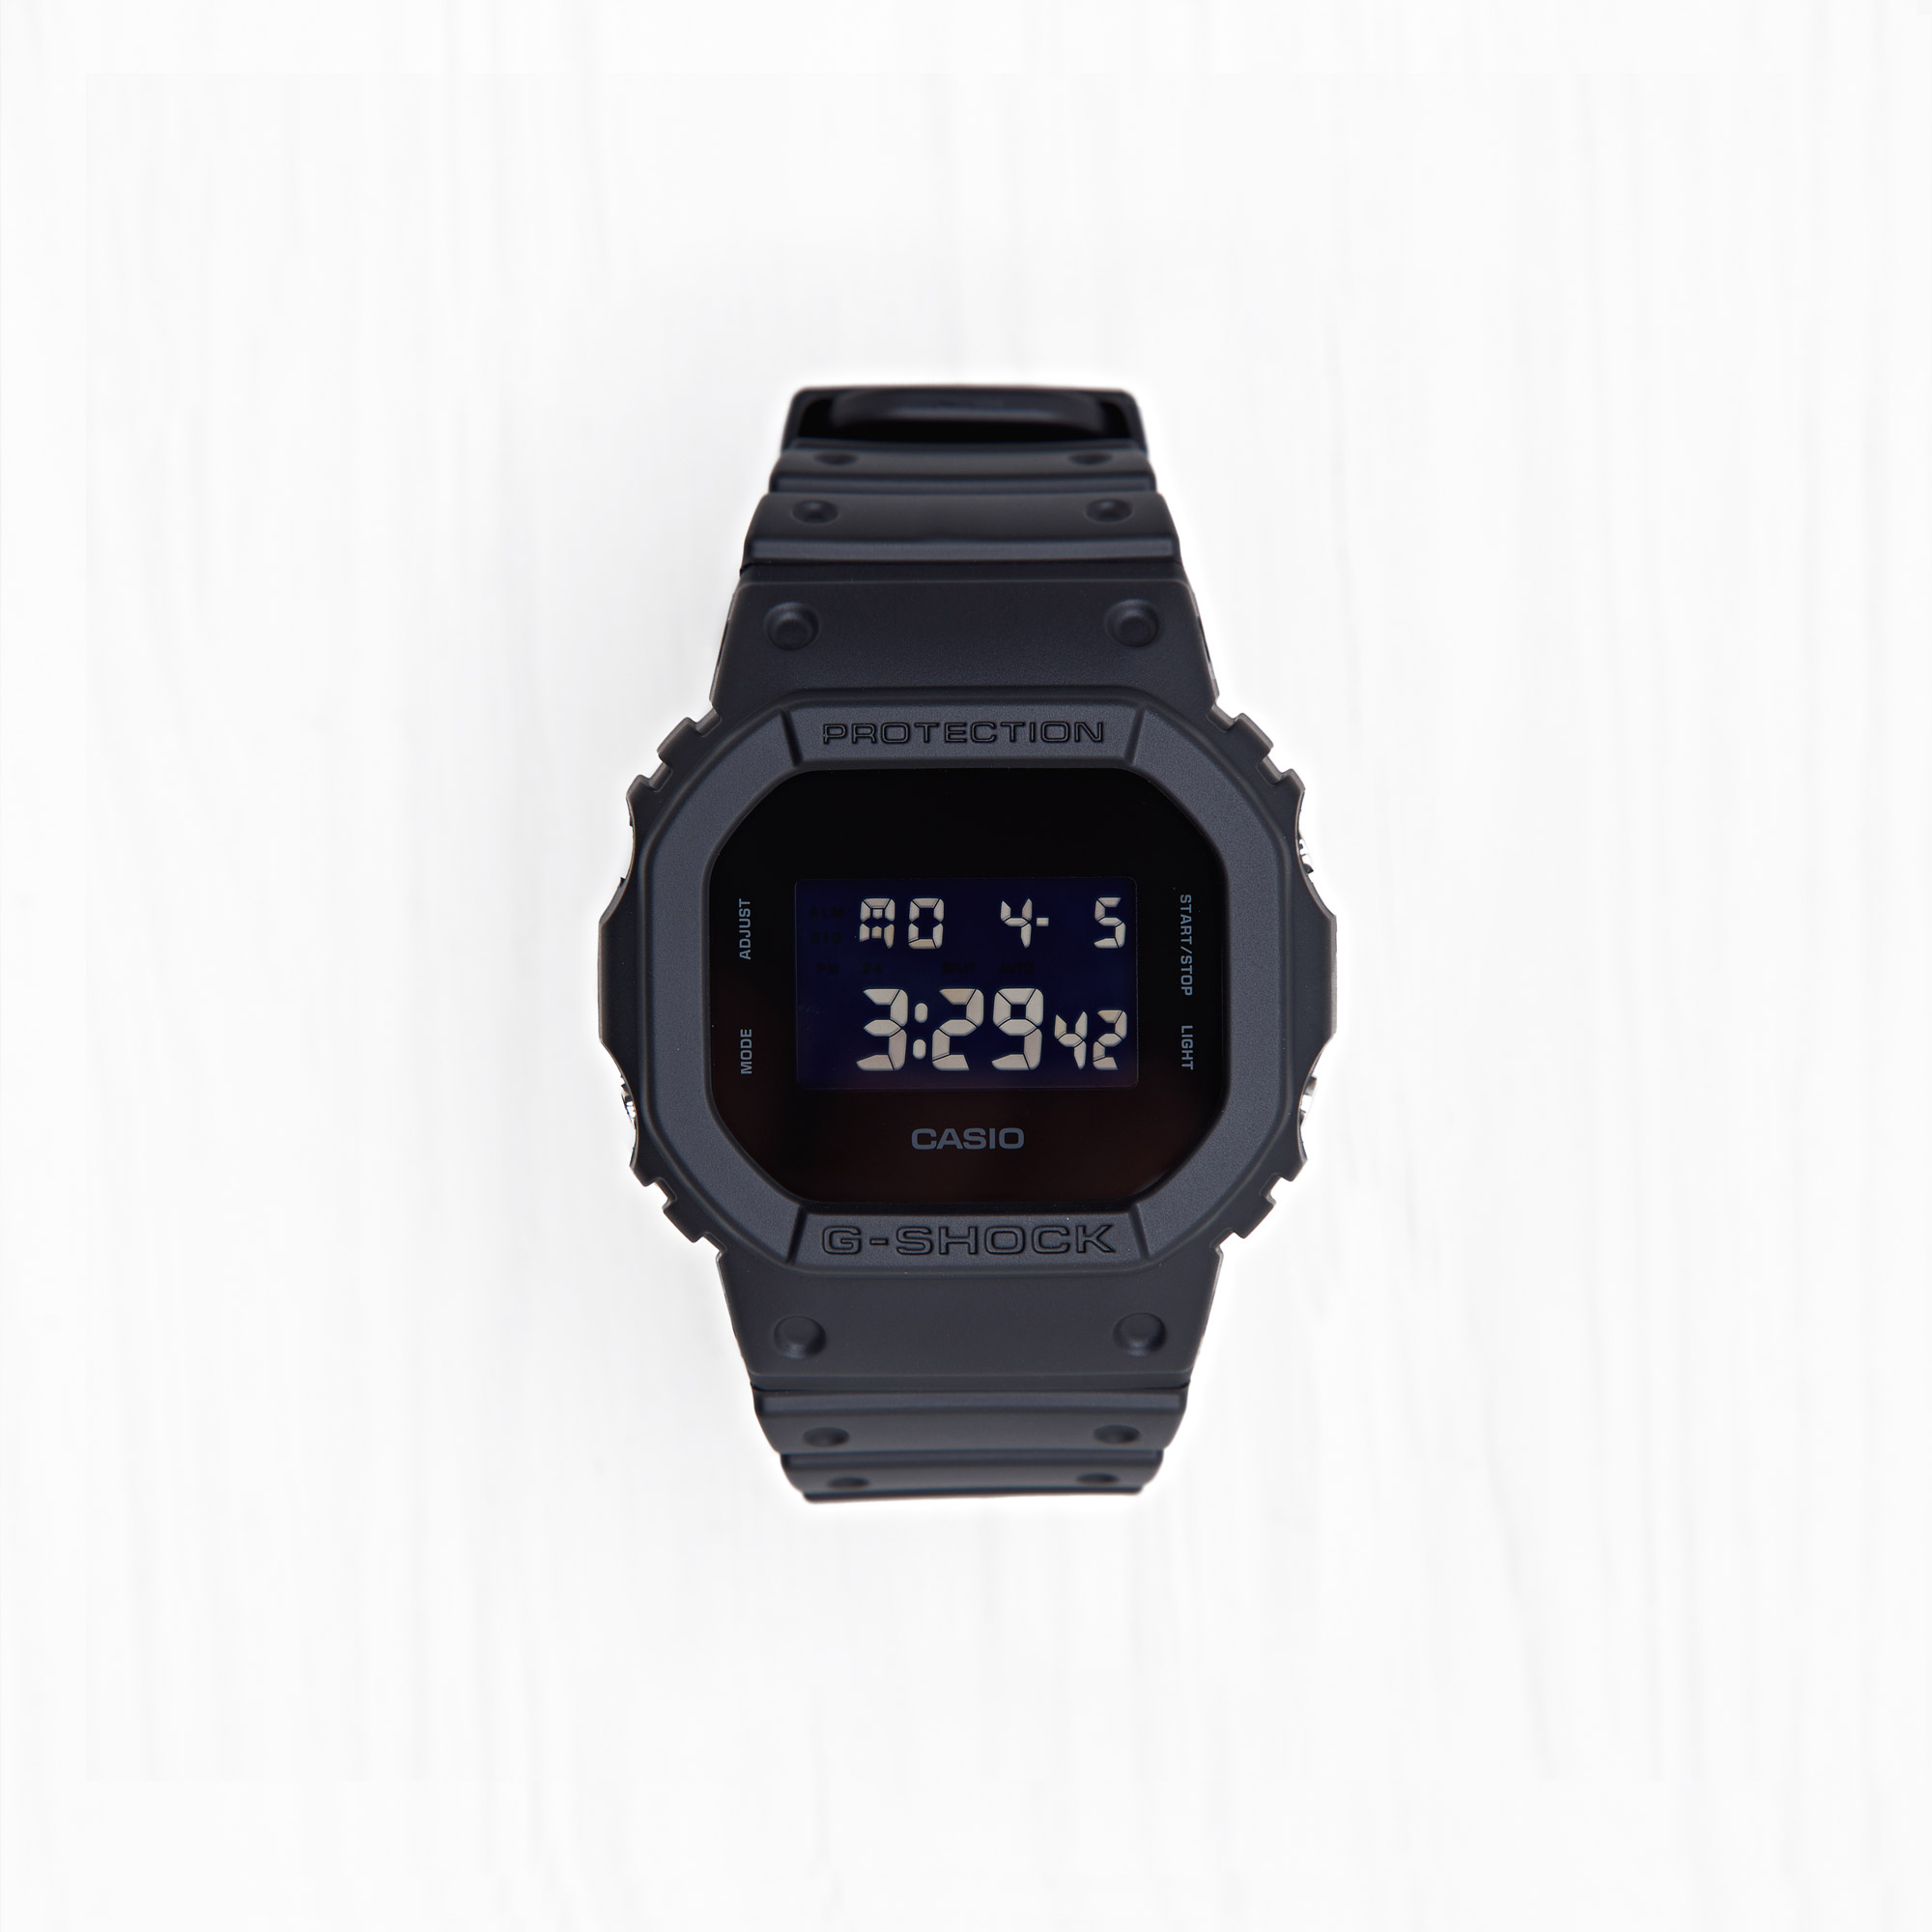 Часы Casio G-SHOCK SPECIALS (DW-5600BB-1E) Black-Black